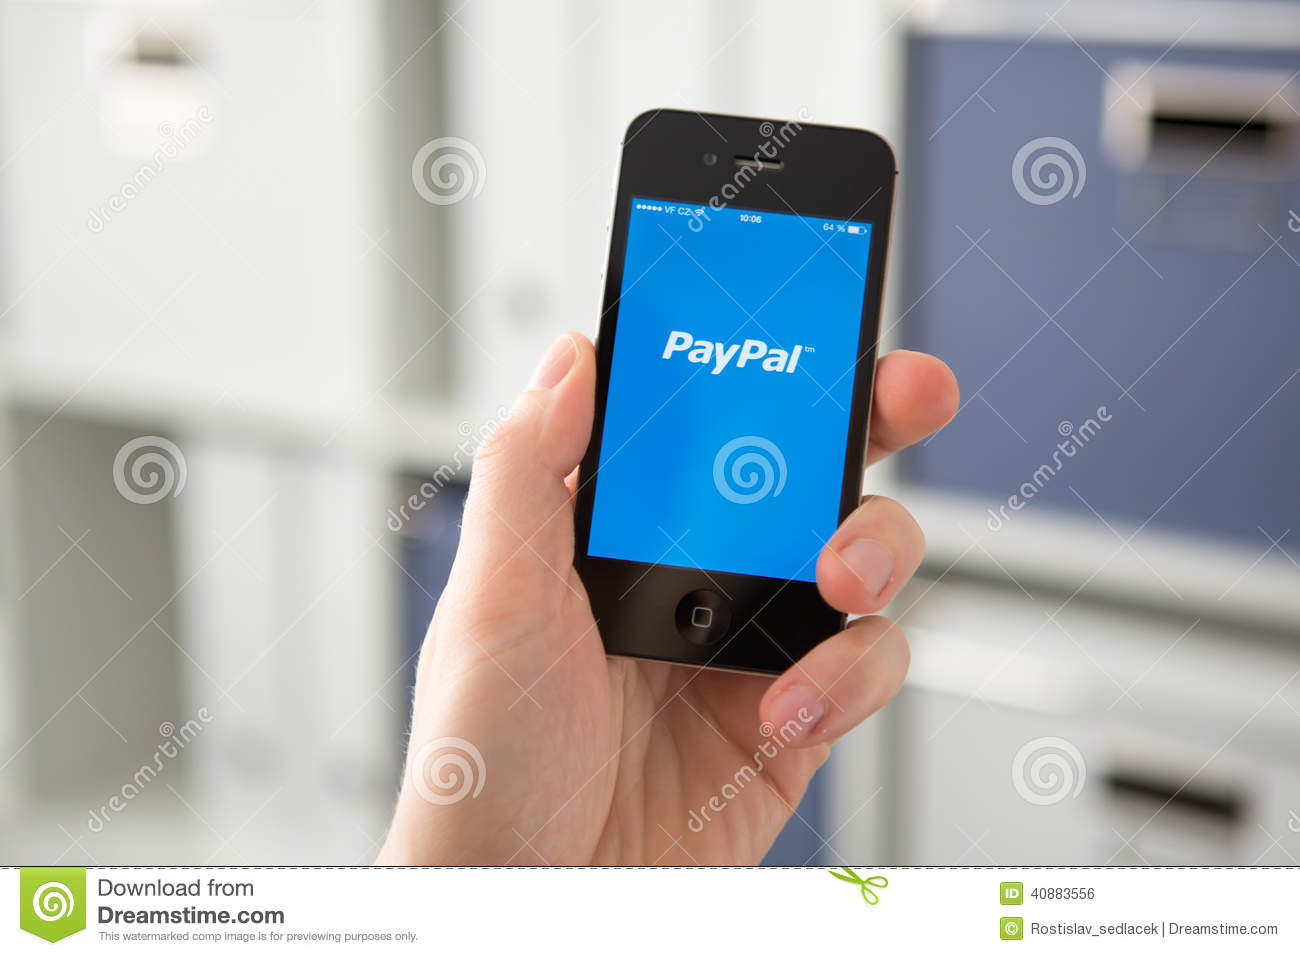 HODONIN CZECH REPUBLIC - APRIL 7: PayPal the most popular way of